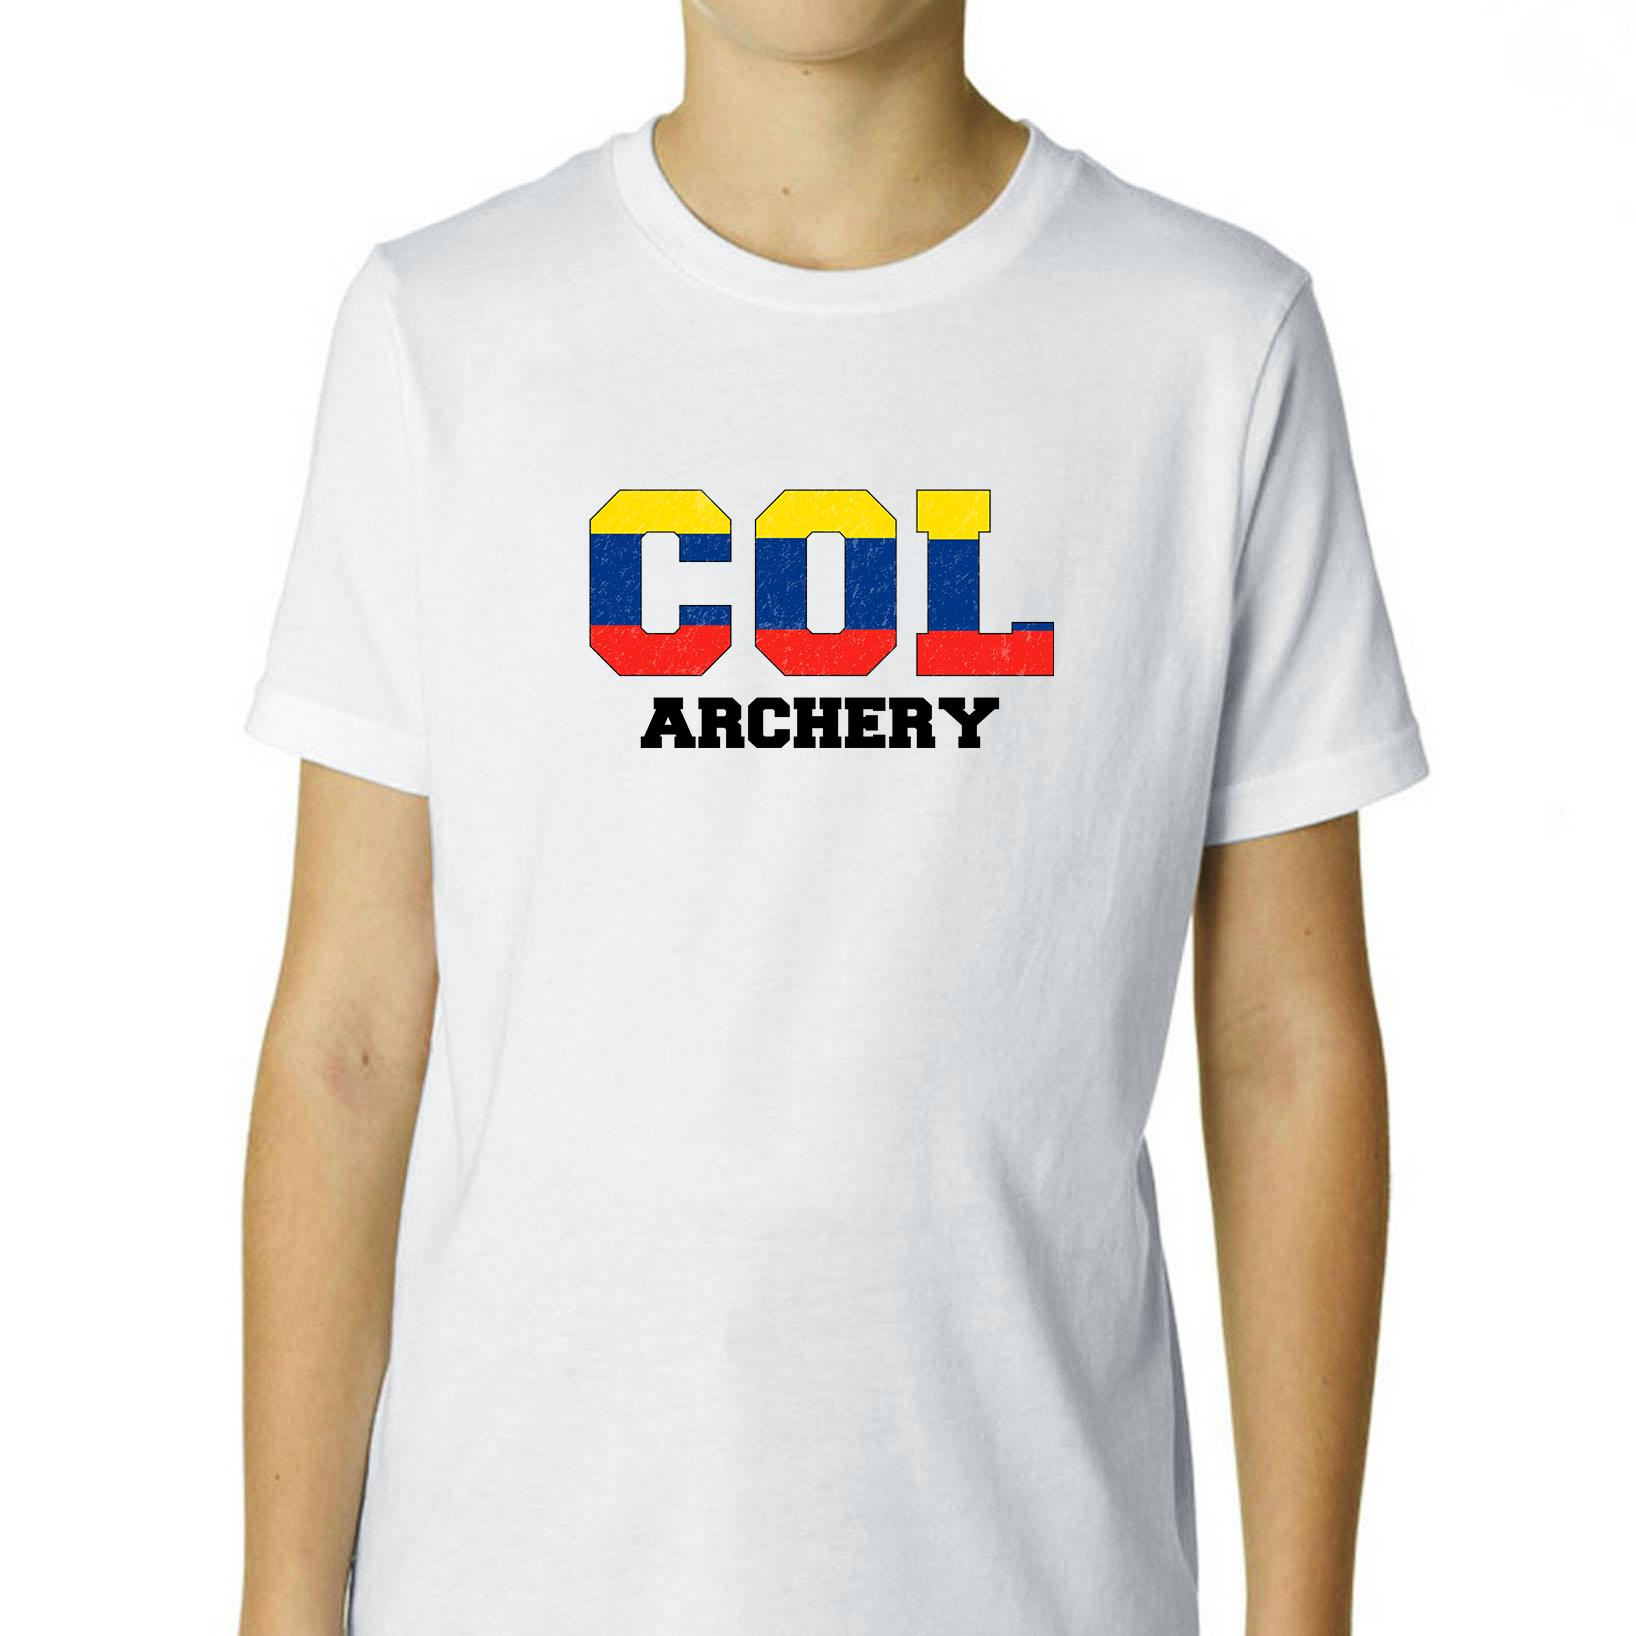 Colombia Archery - Olympic Games - Rio - Flag Boy's Cotton Youth T-Shirt